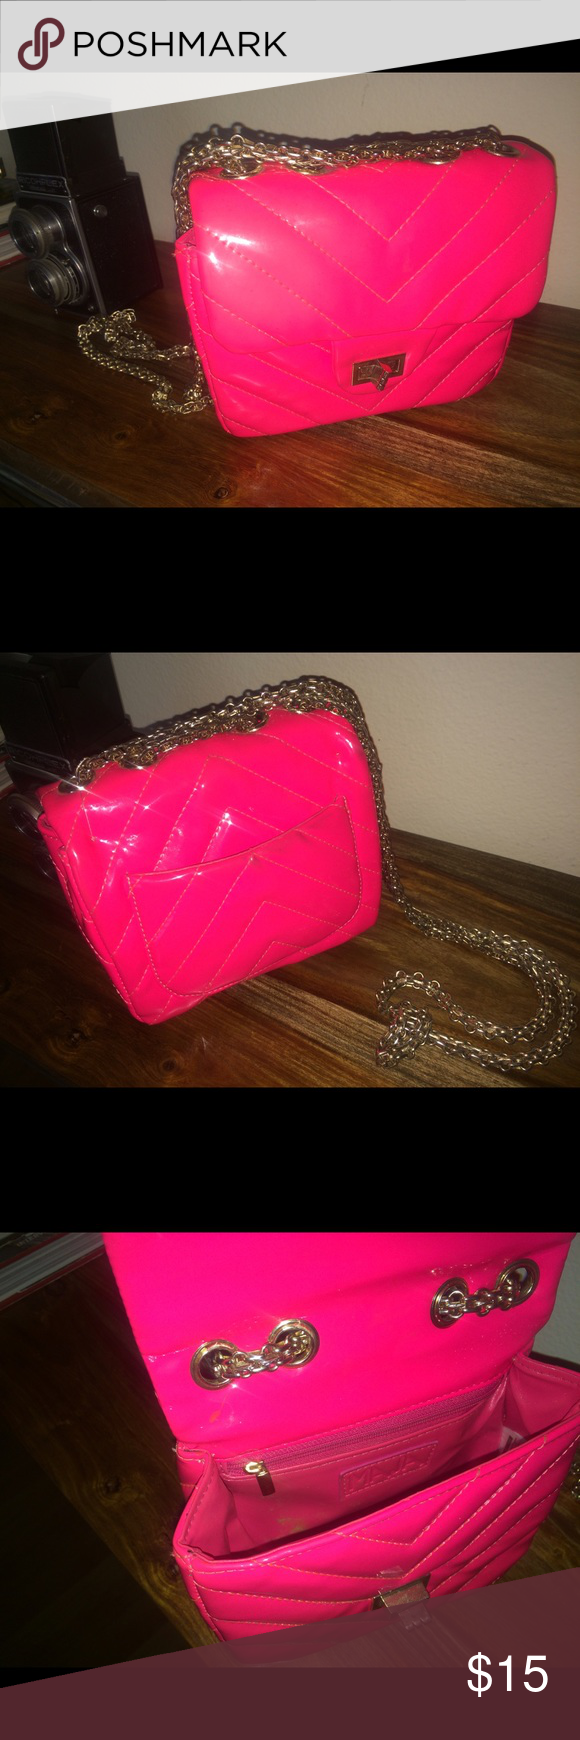 NEON PINK 🌼 CROSS BODY WITH CHAIN Neon pink bag with gold chain. There's a few stains and scruffs along the bag price reflects. Bags Crossbody Bags